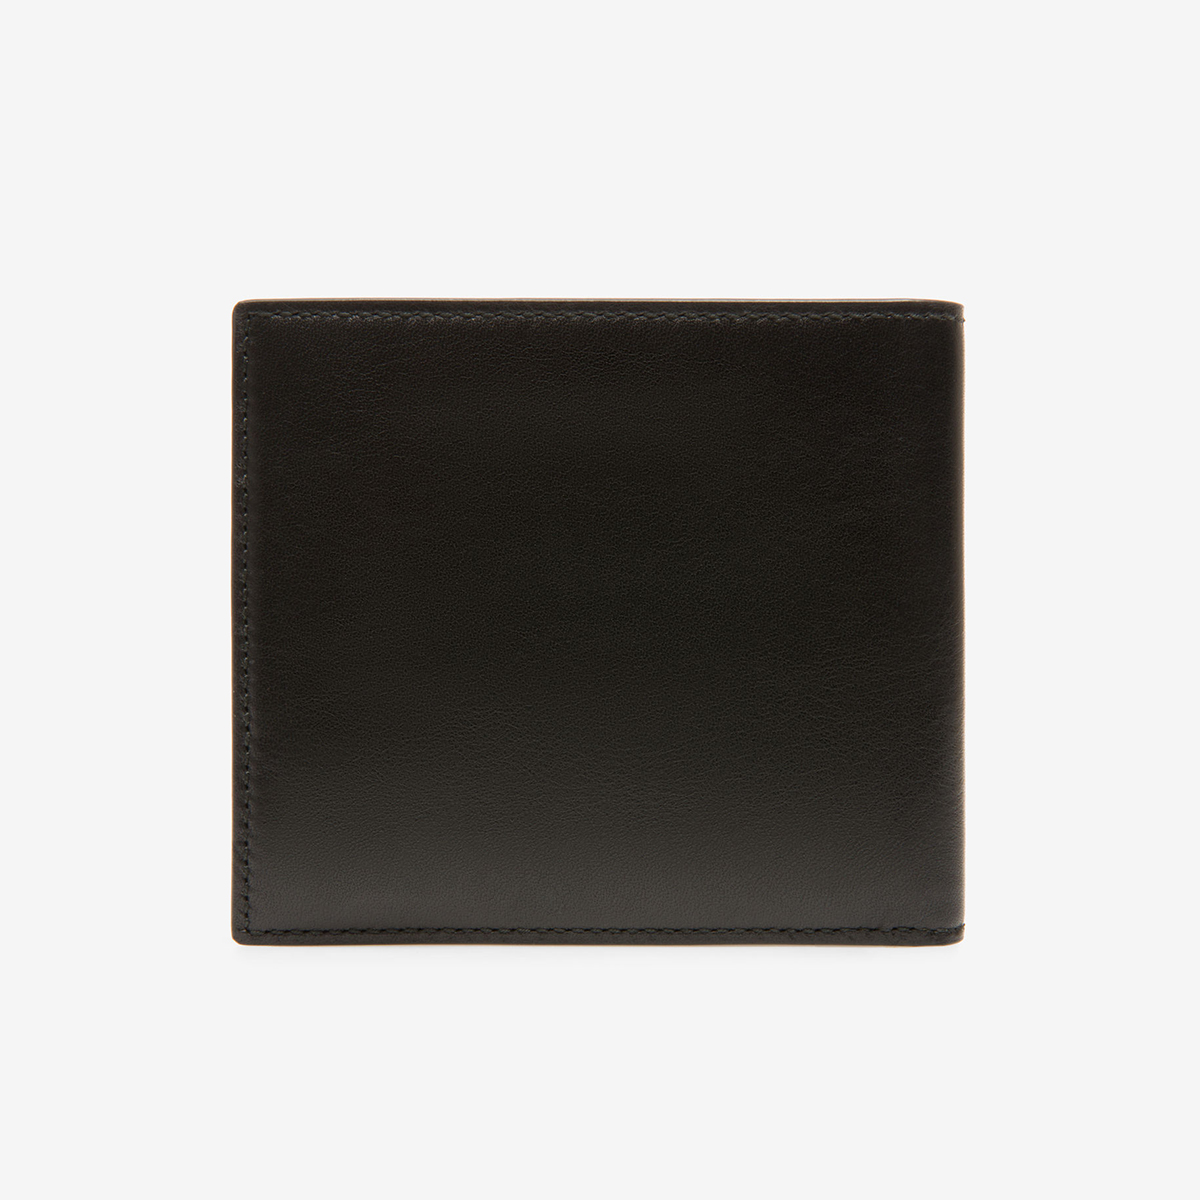 vi-da-bally-brasai-black-calf-plain